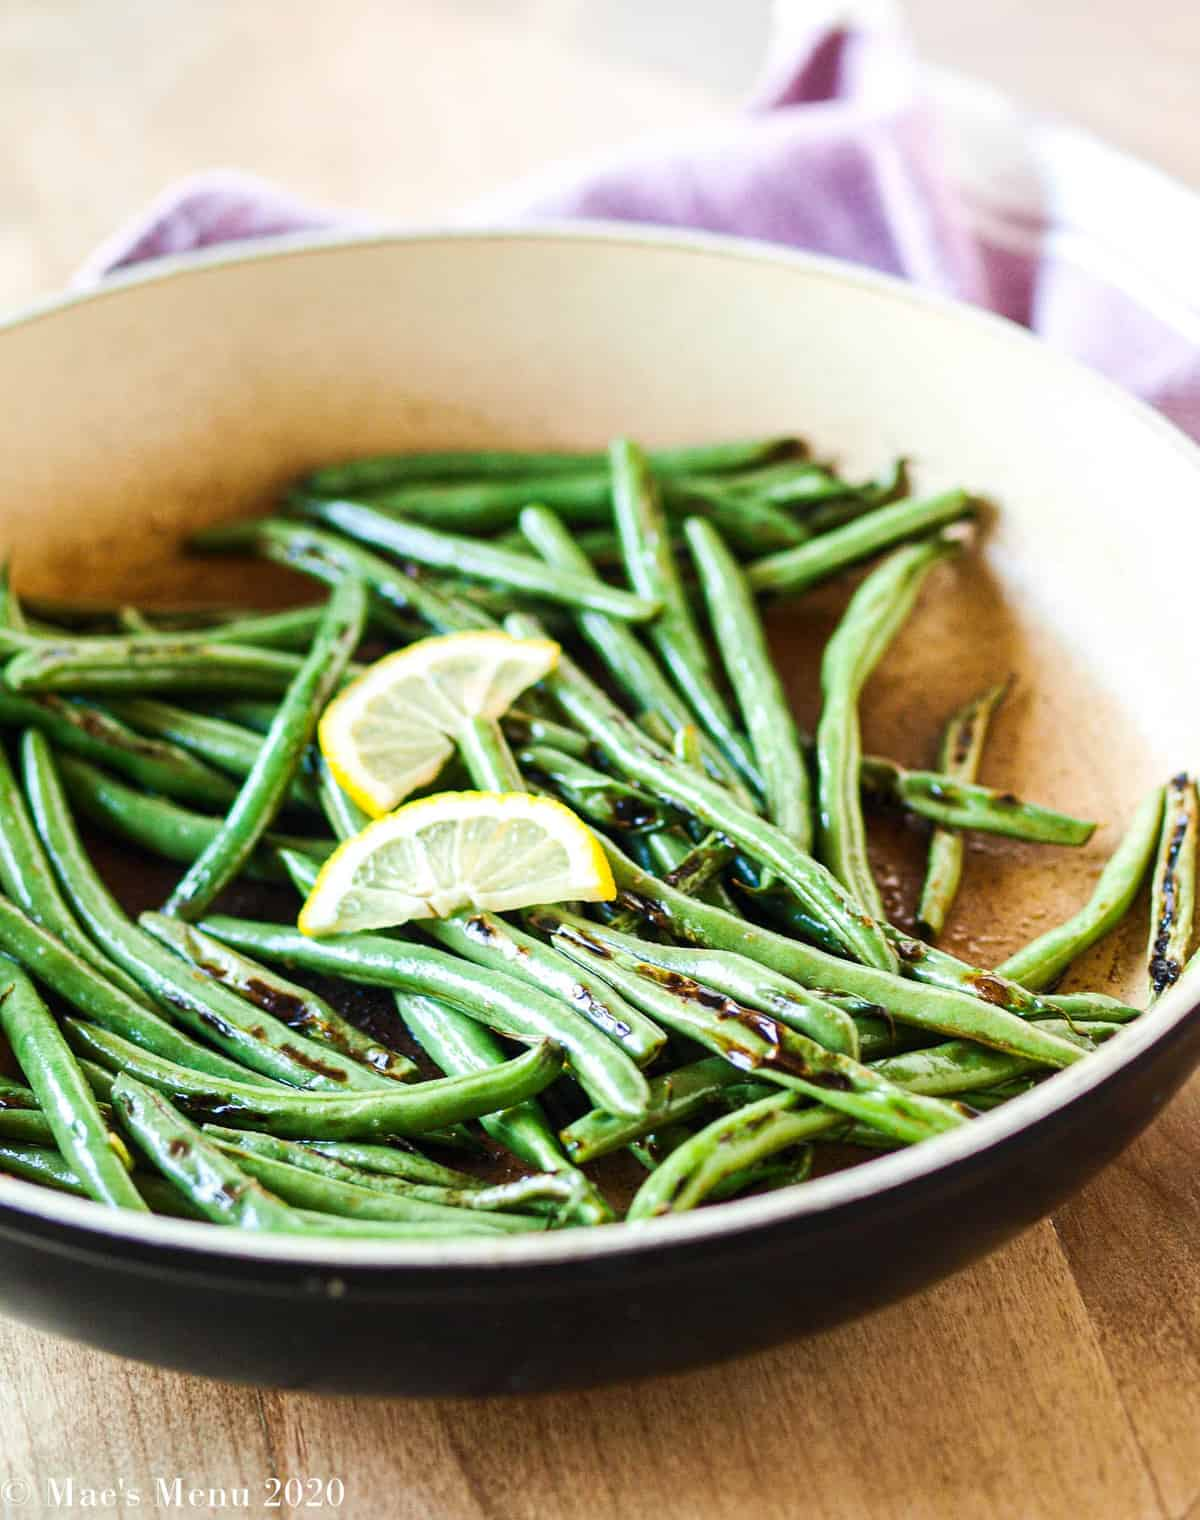 A large non-stick skillet full of blistered green beans